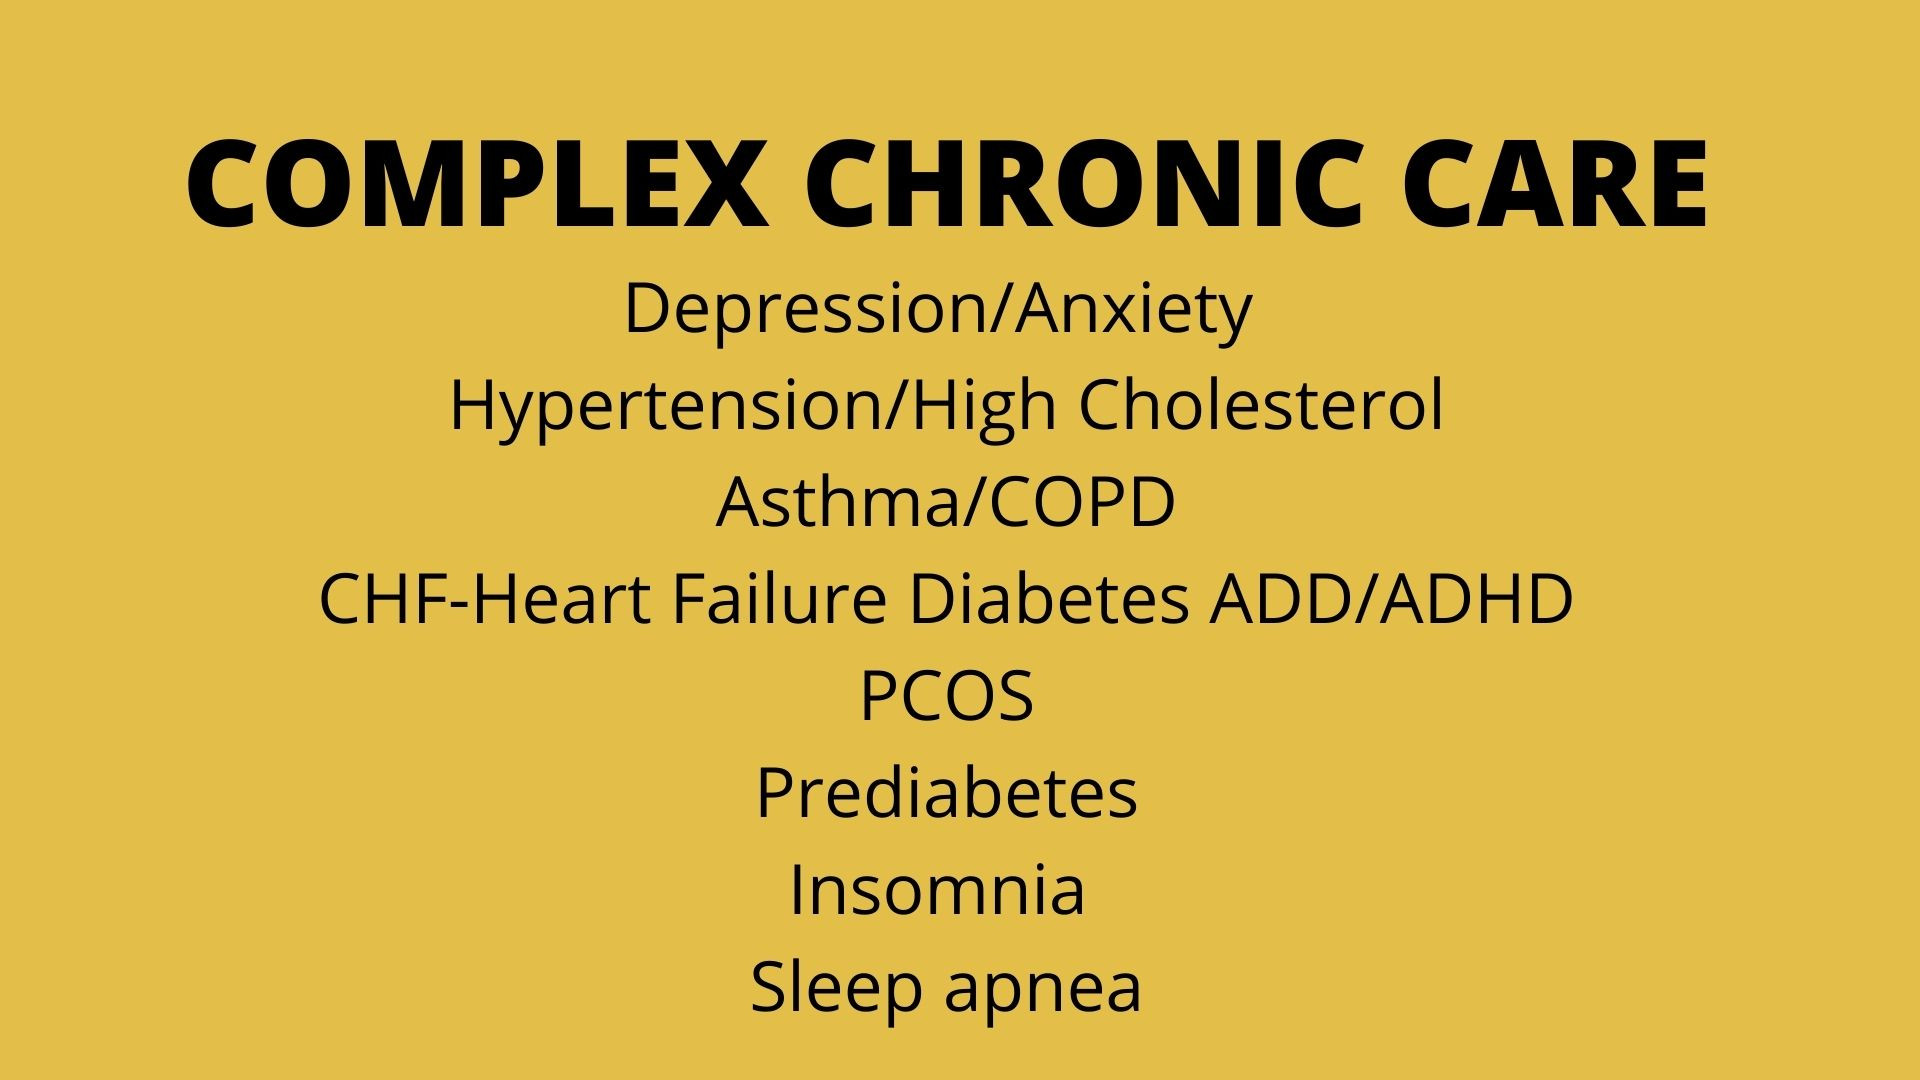 COMPLEX CHRONIC CARE (1).jpg